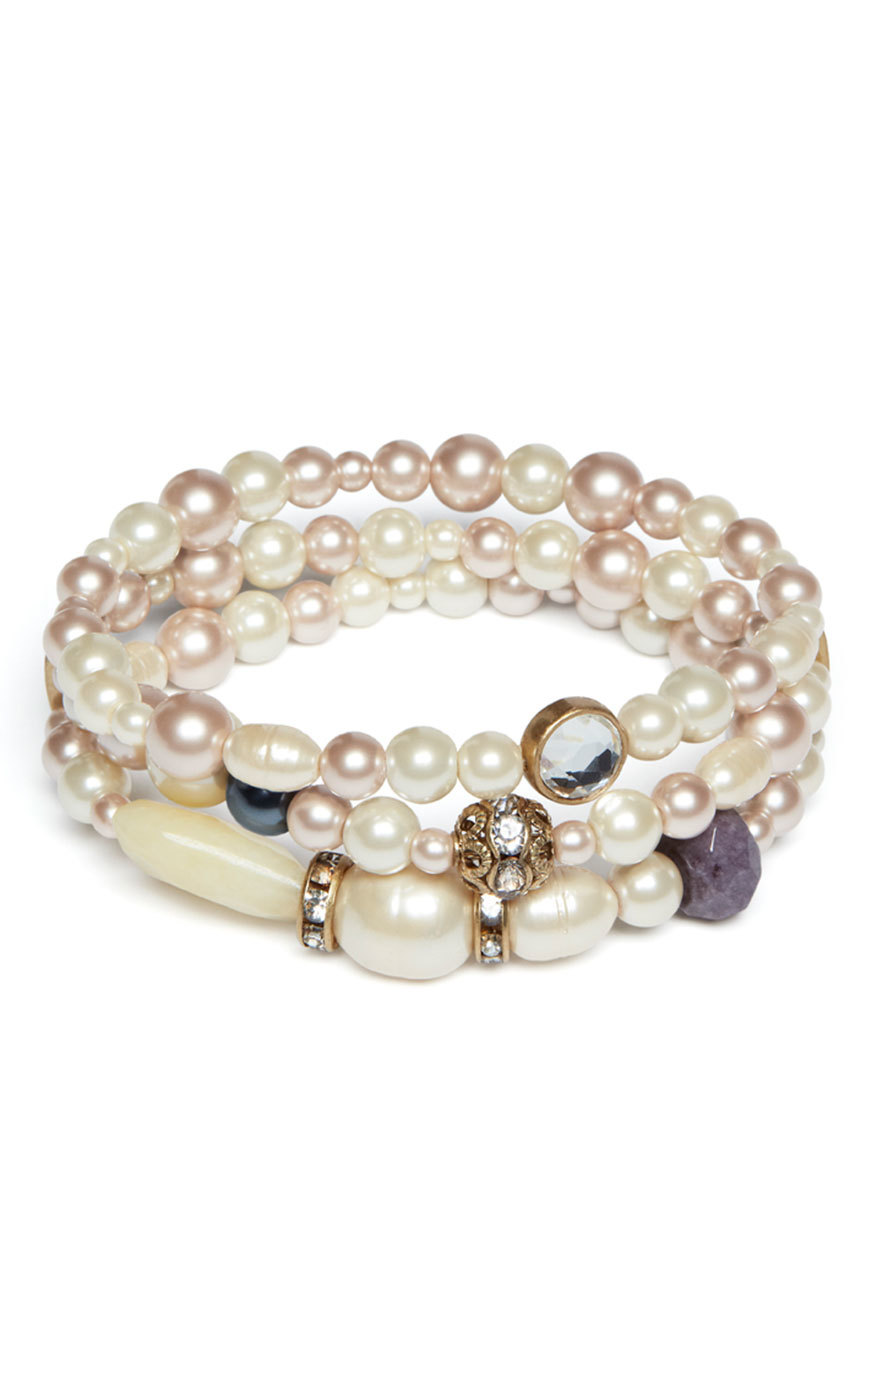 cabi's Treasure Bracelet